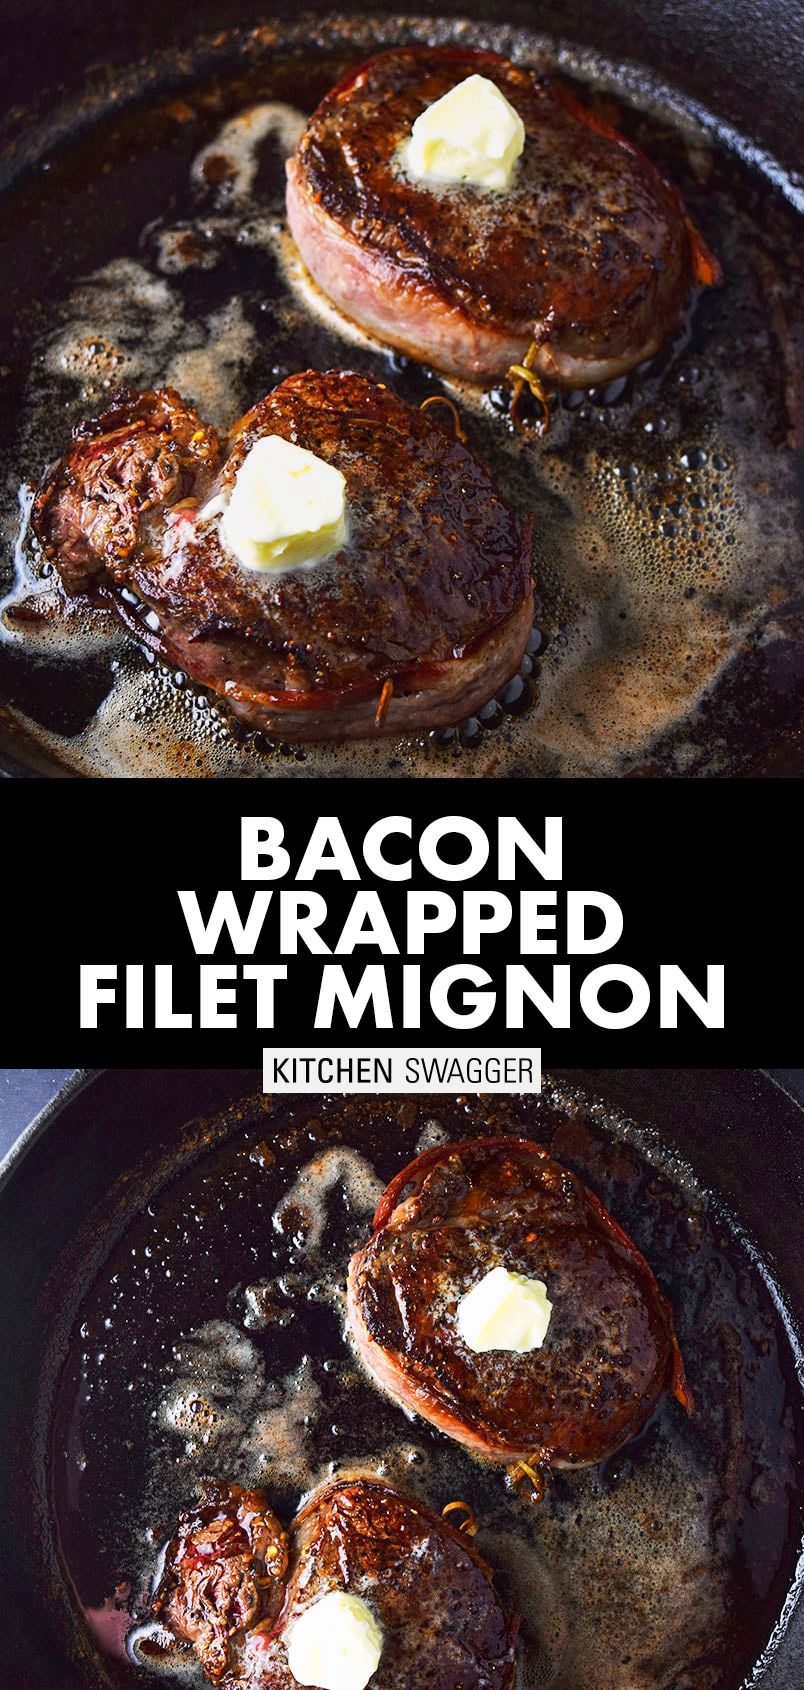 Baconwrapped filet mignon with truffle butter recipe in